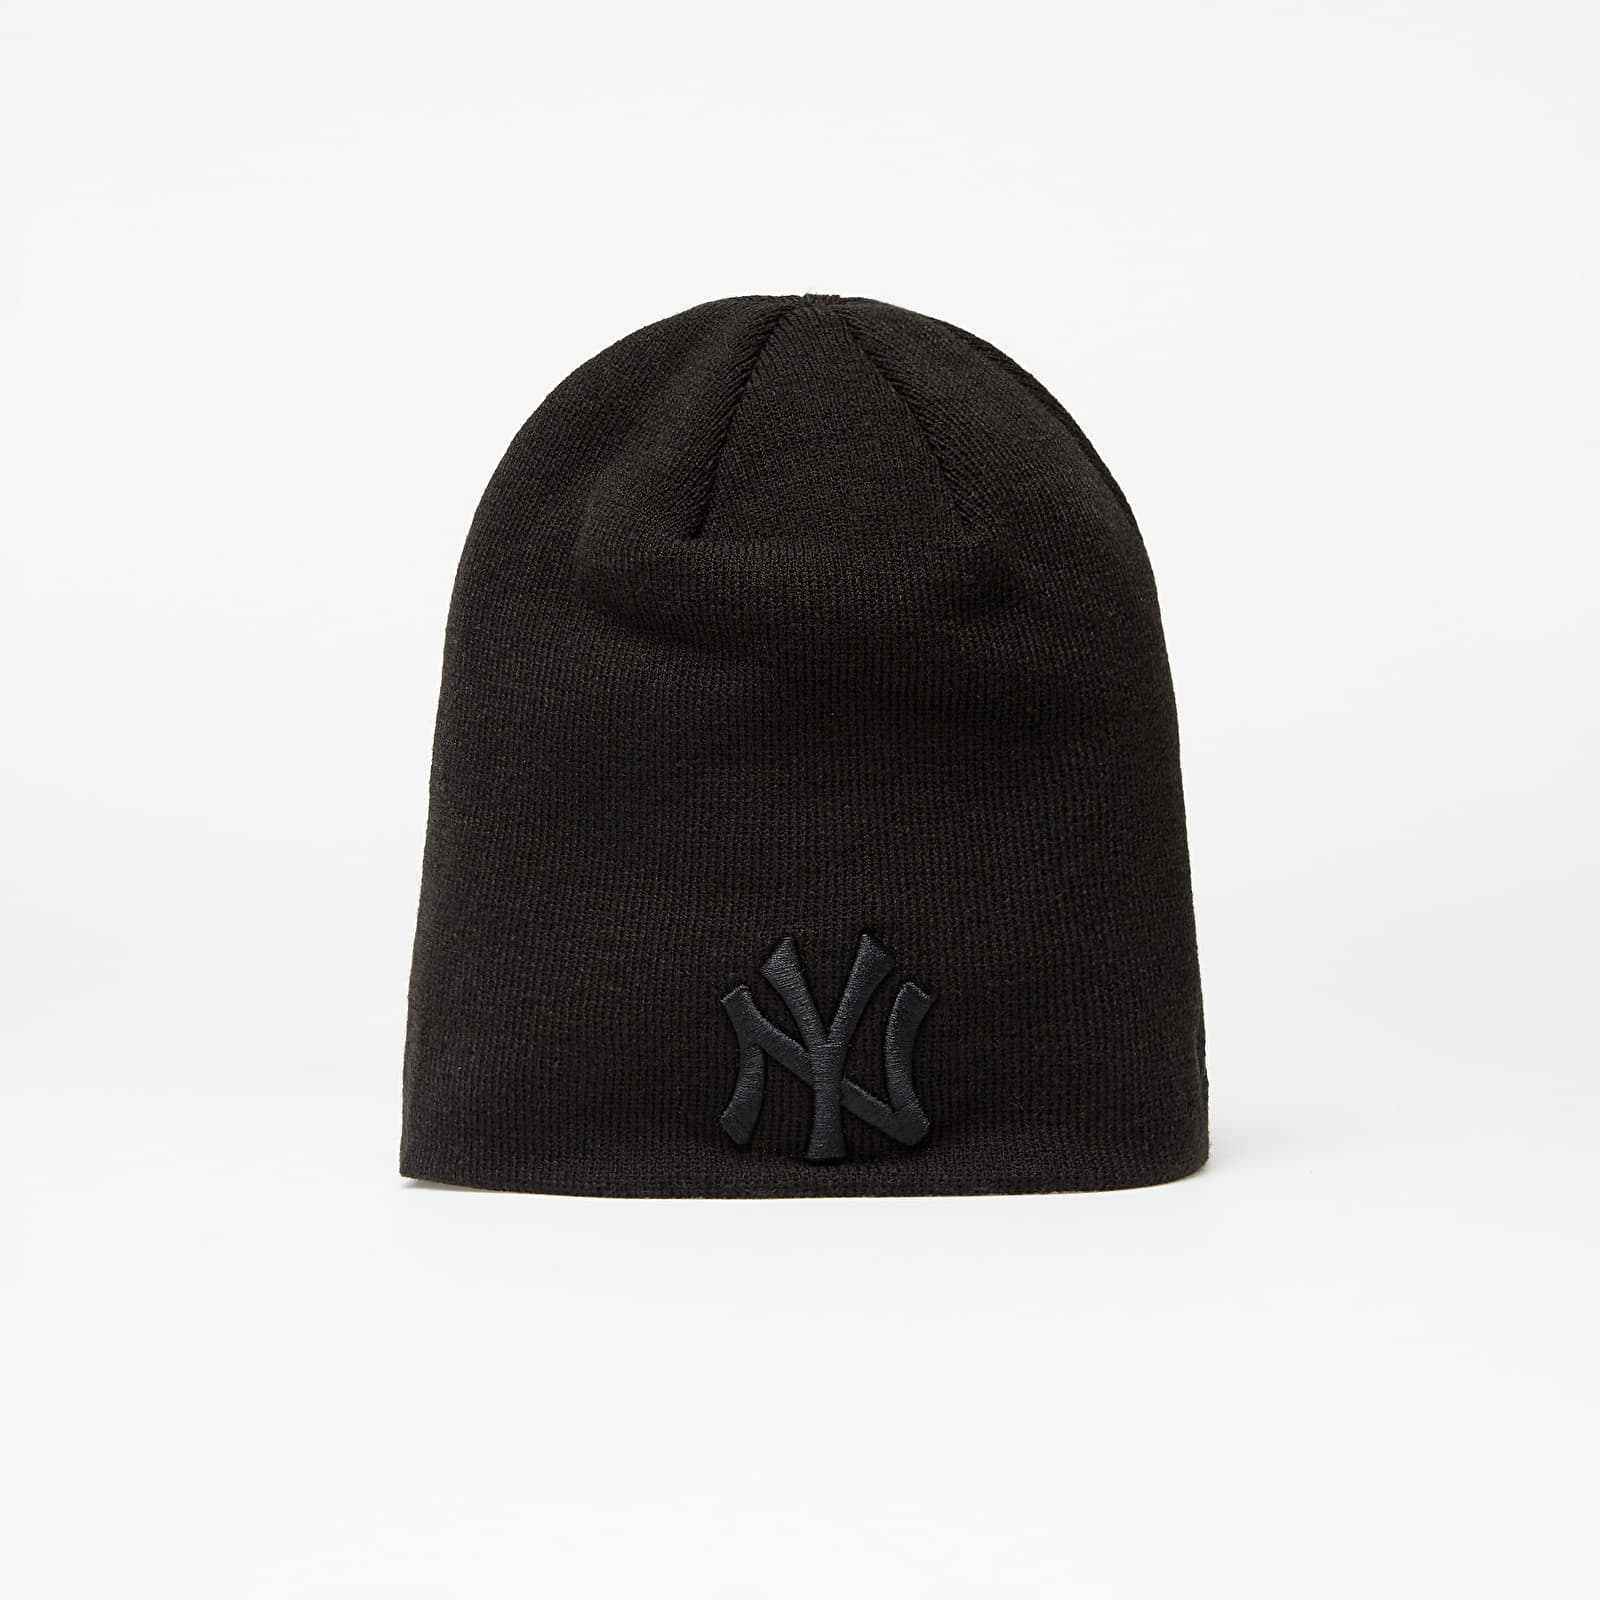 New Era Beanie Mlb Dark Base Skull Knit New York Yankees Black EUR